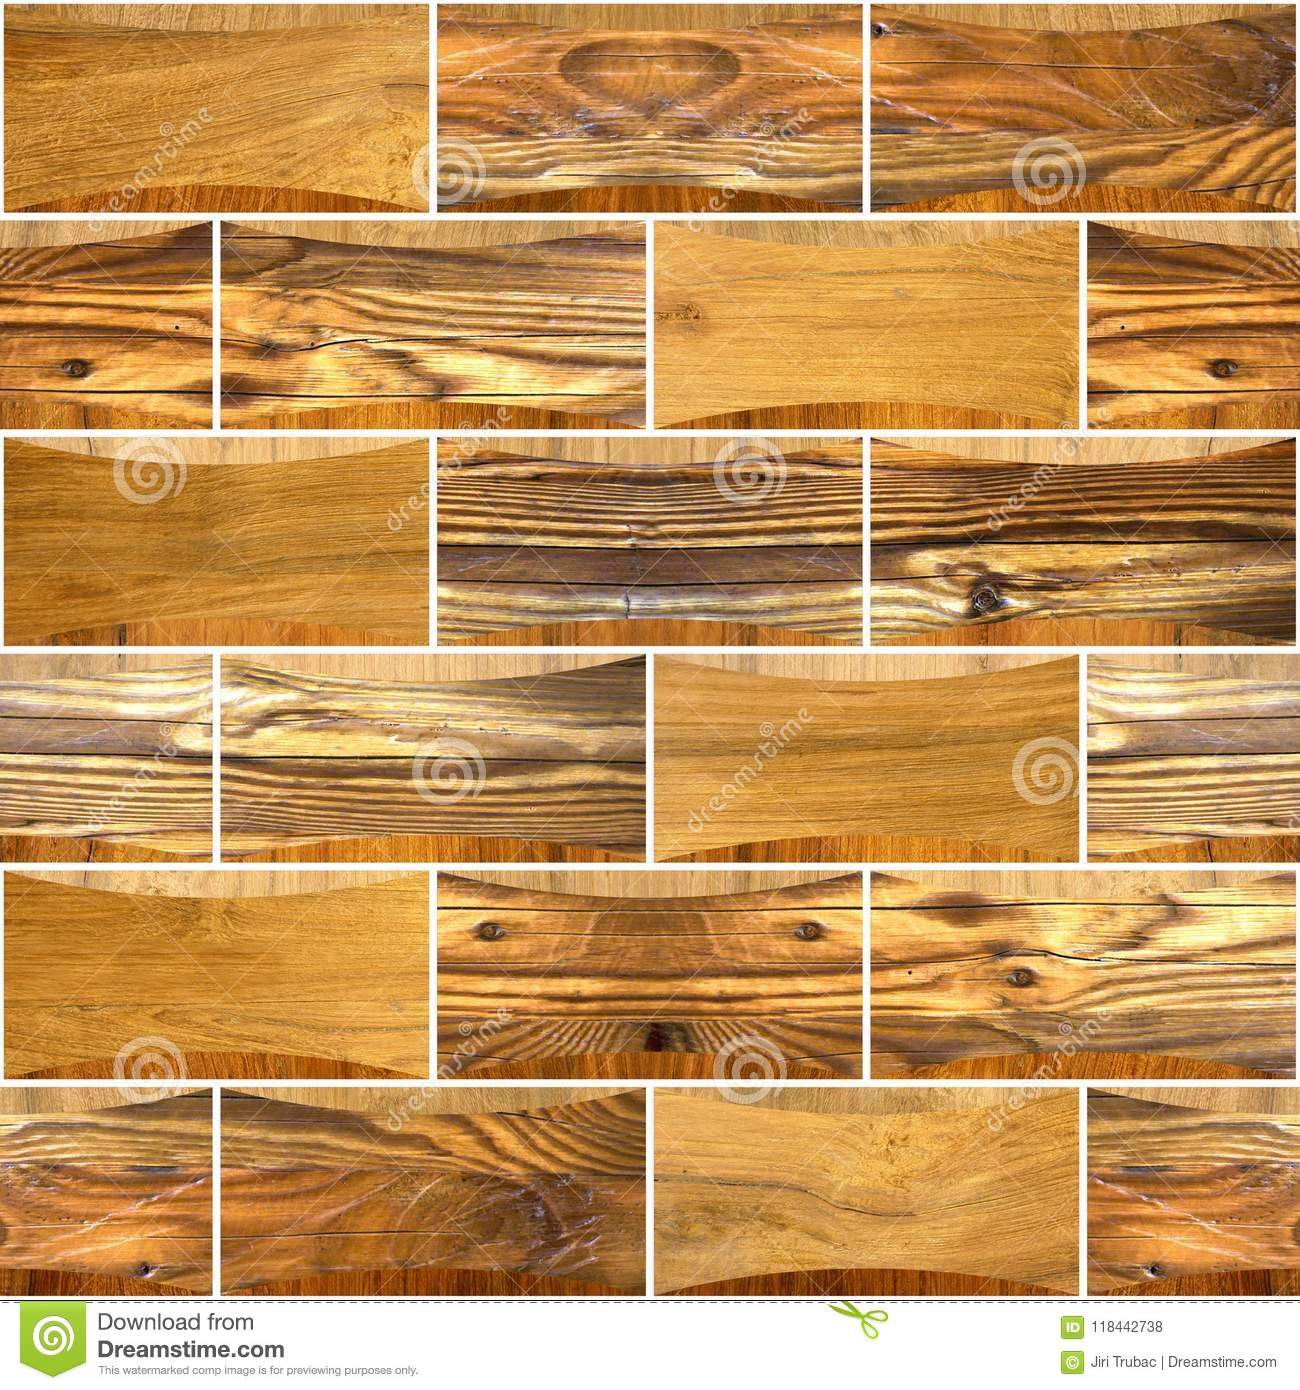 Decorative Wooden Bricks - Interior Wall Decoration Stock